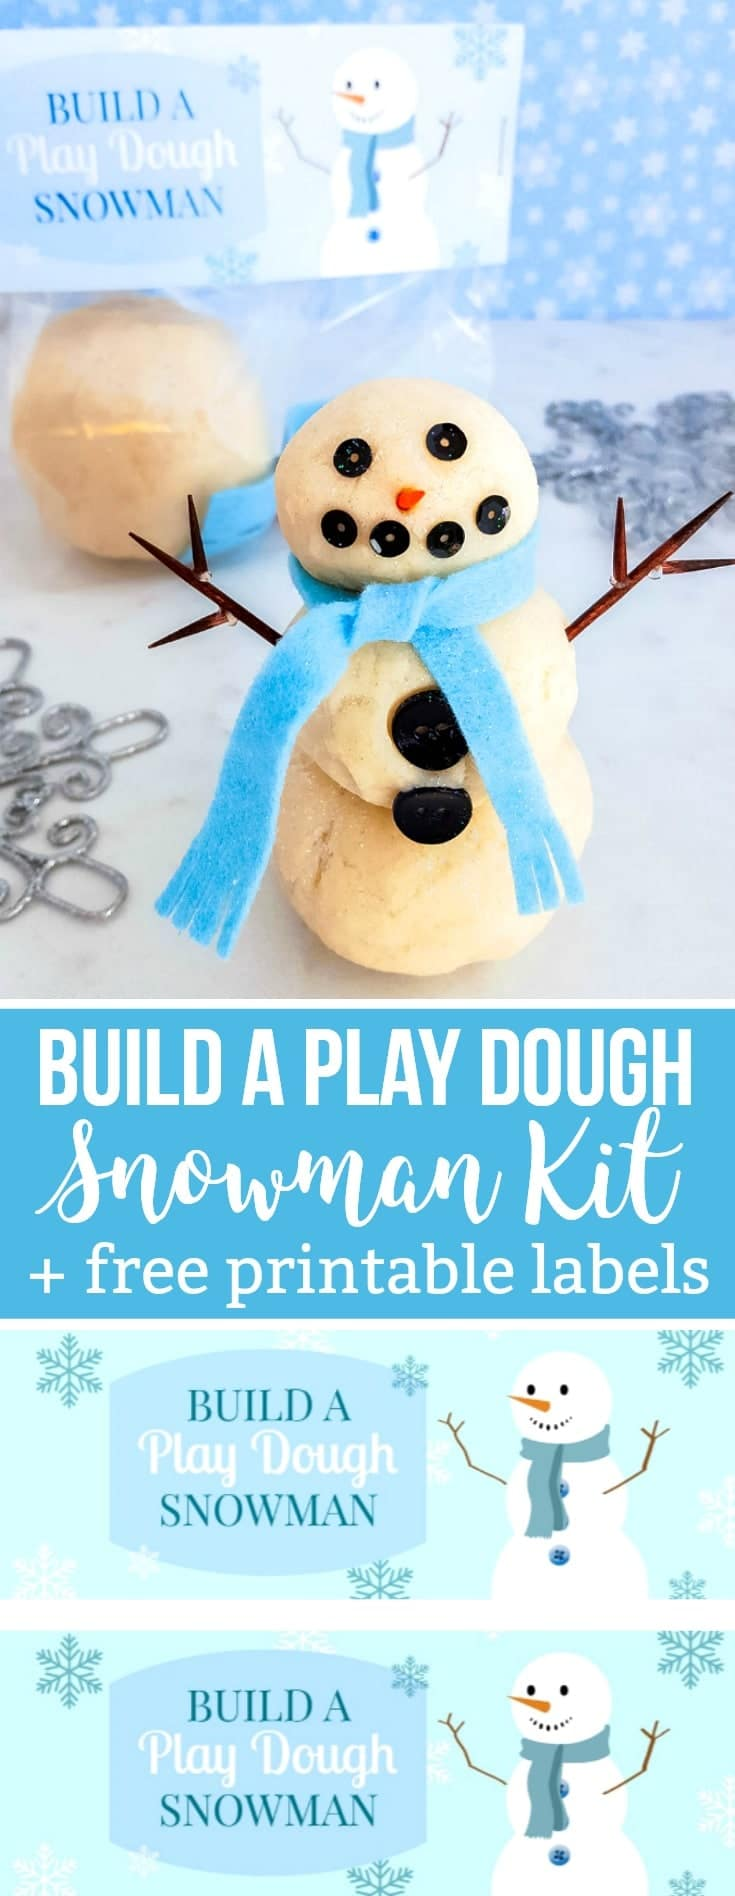 Build a Play Dough Snowman Kit